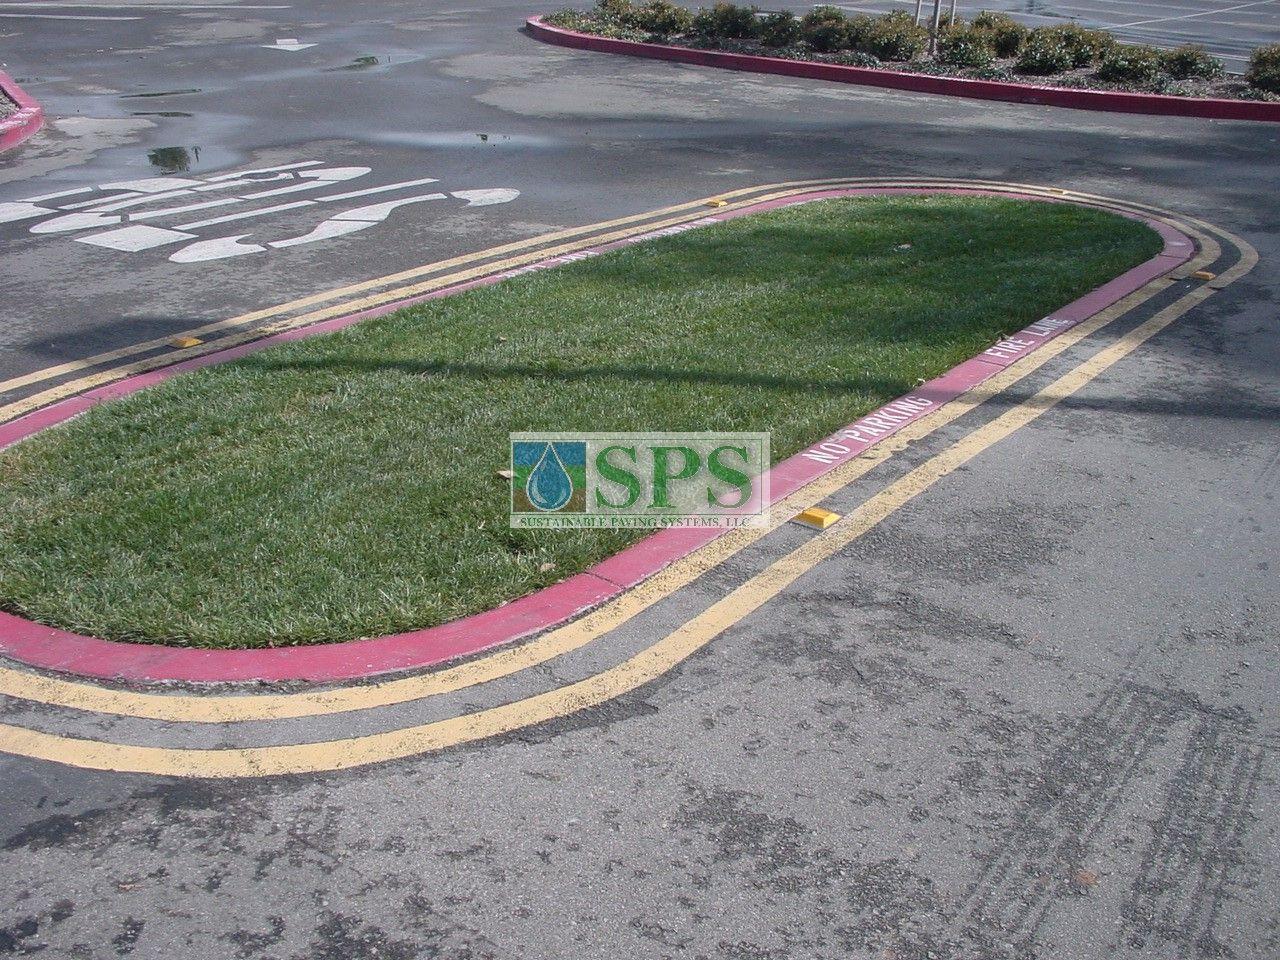 Median of Fully Concealed Grasscrete to provide wider turnaround areas for fire trucks and maintenance vehicles at Woodbury Community Development in Irvine, CA.